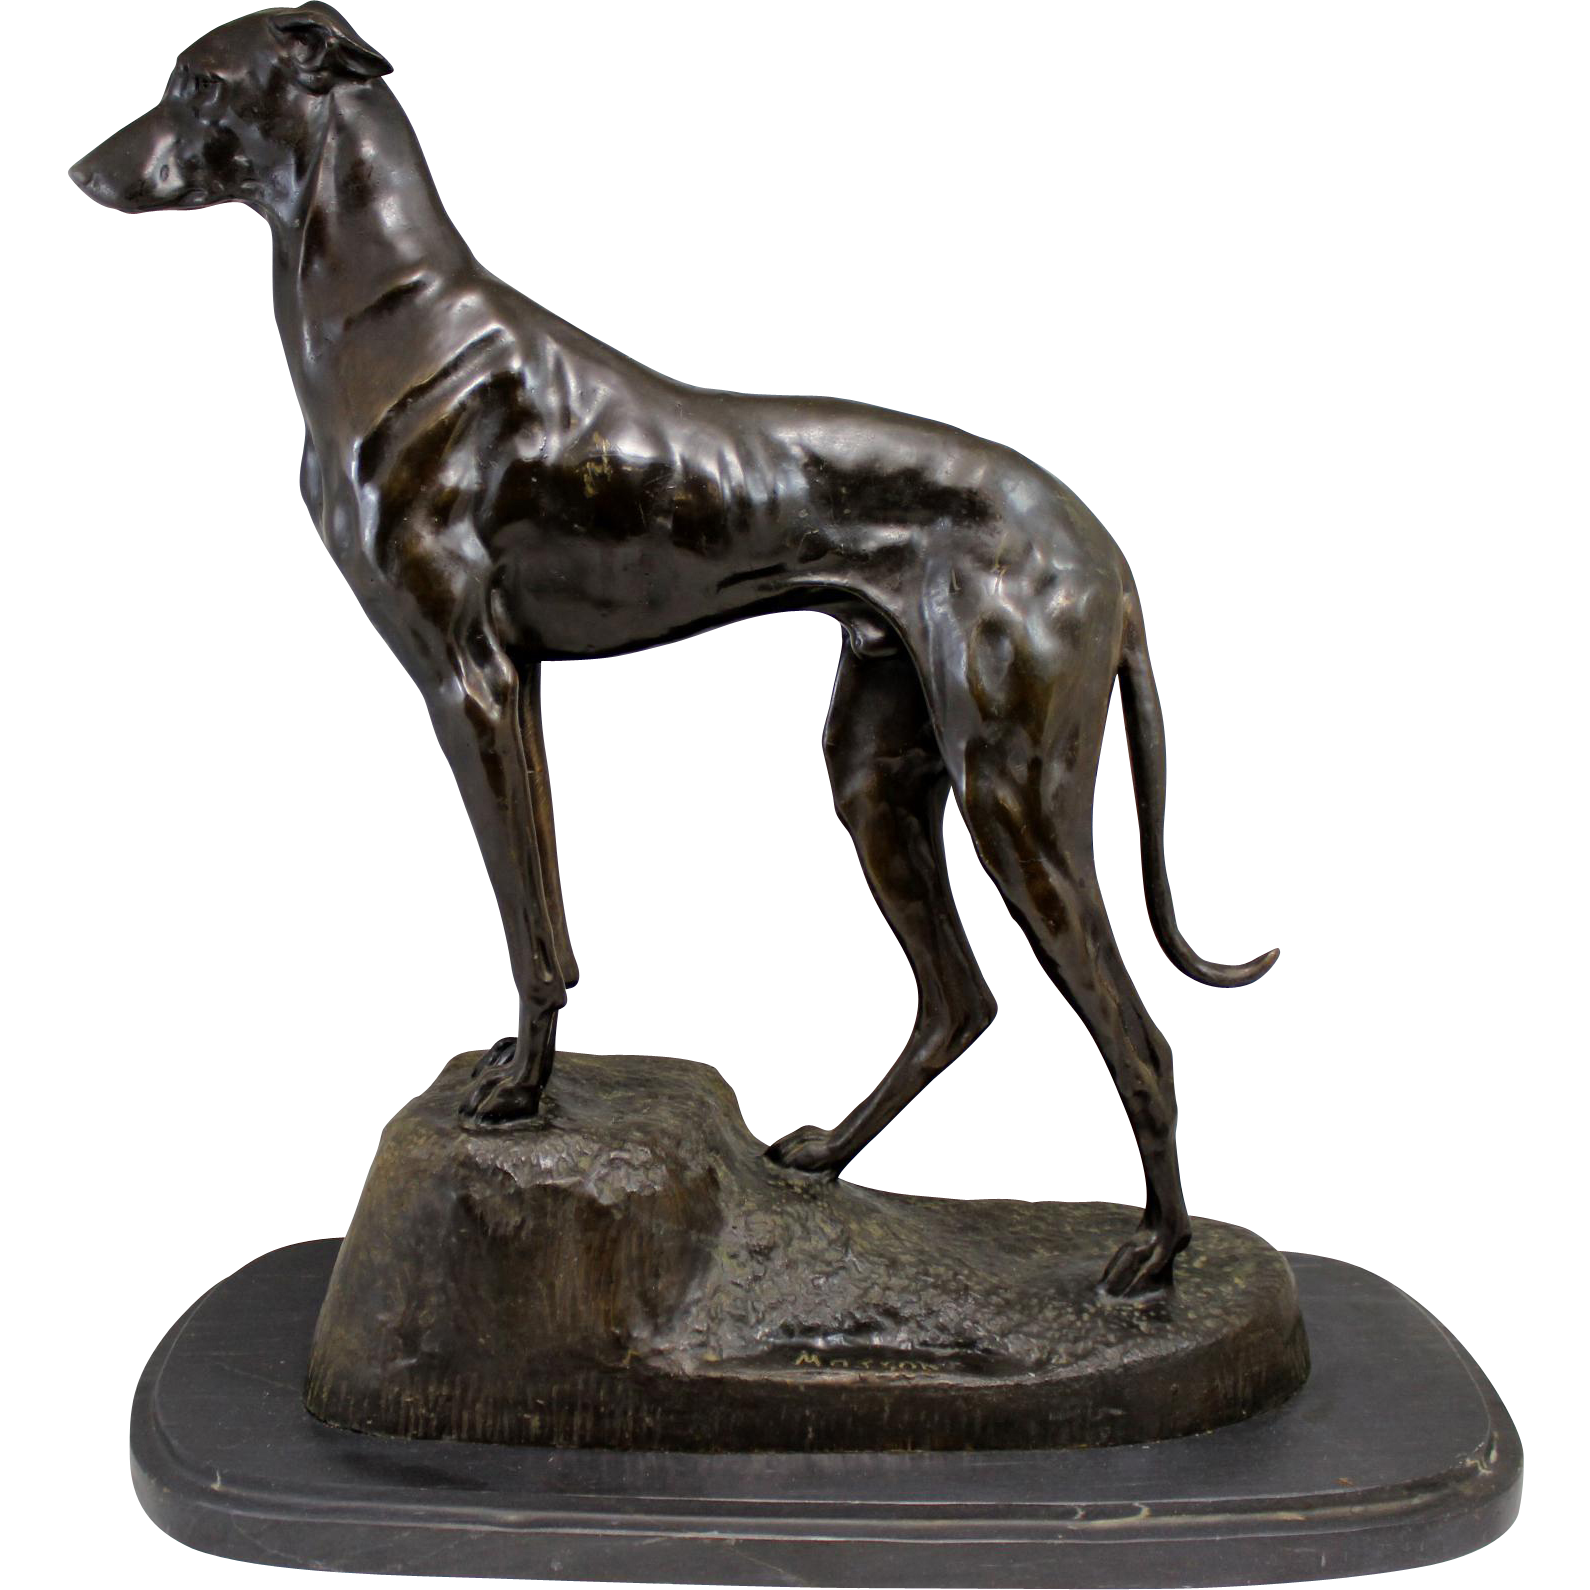 Jules-Edmond Masson Cast Bronze of a Greyhound or Lurcher Dog